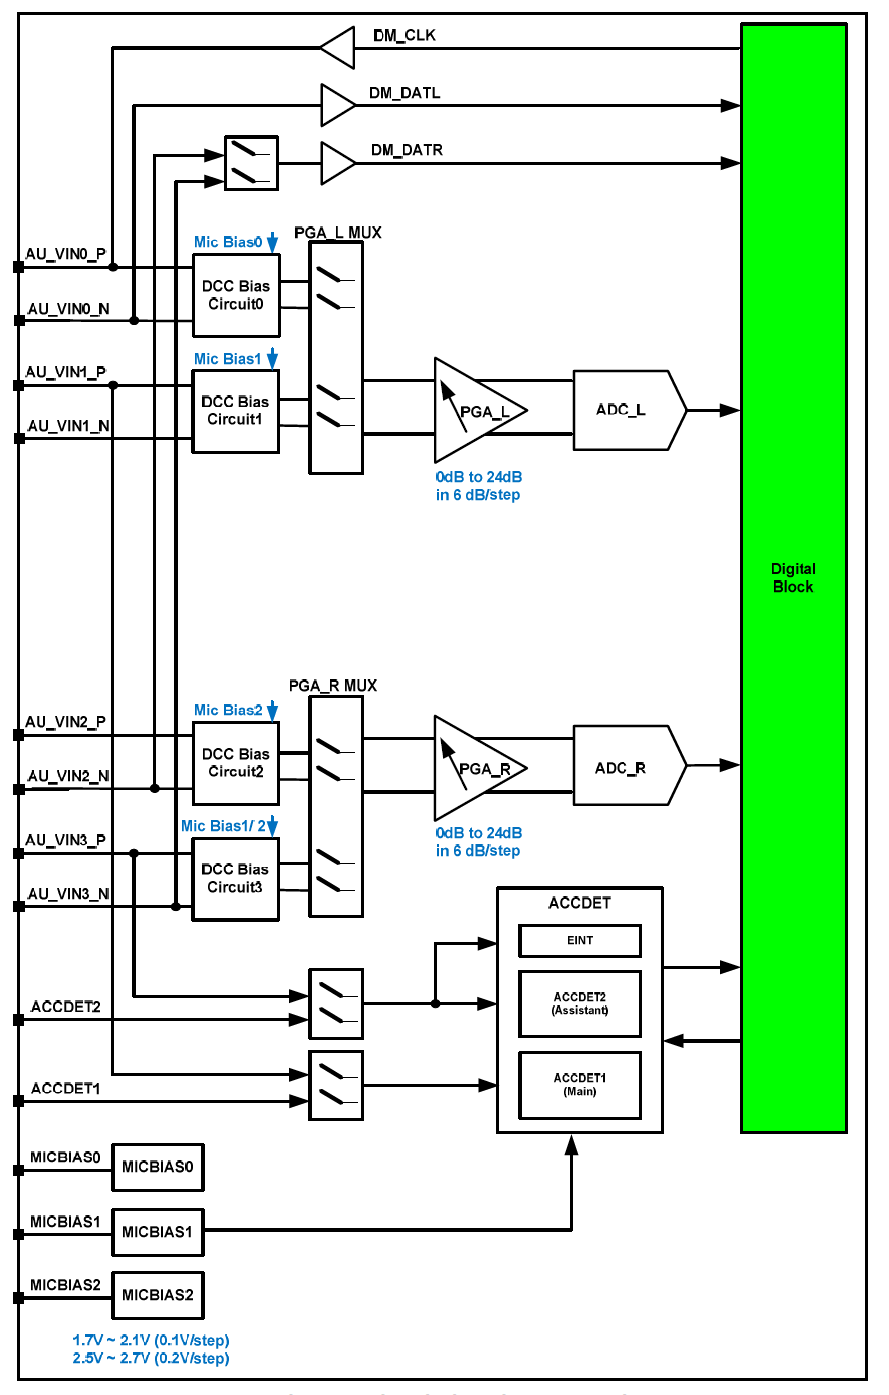 Hardware User Manual For Mediatek X20 Pro 96boards H 264 Codec Block Diagram The Analog Port Which Connected To Mt6351 Includes A Stereo Handset Io And Two Audio Outputs Internal Diagrams Of Are